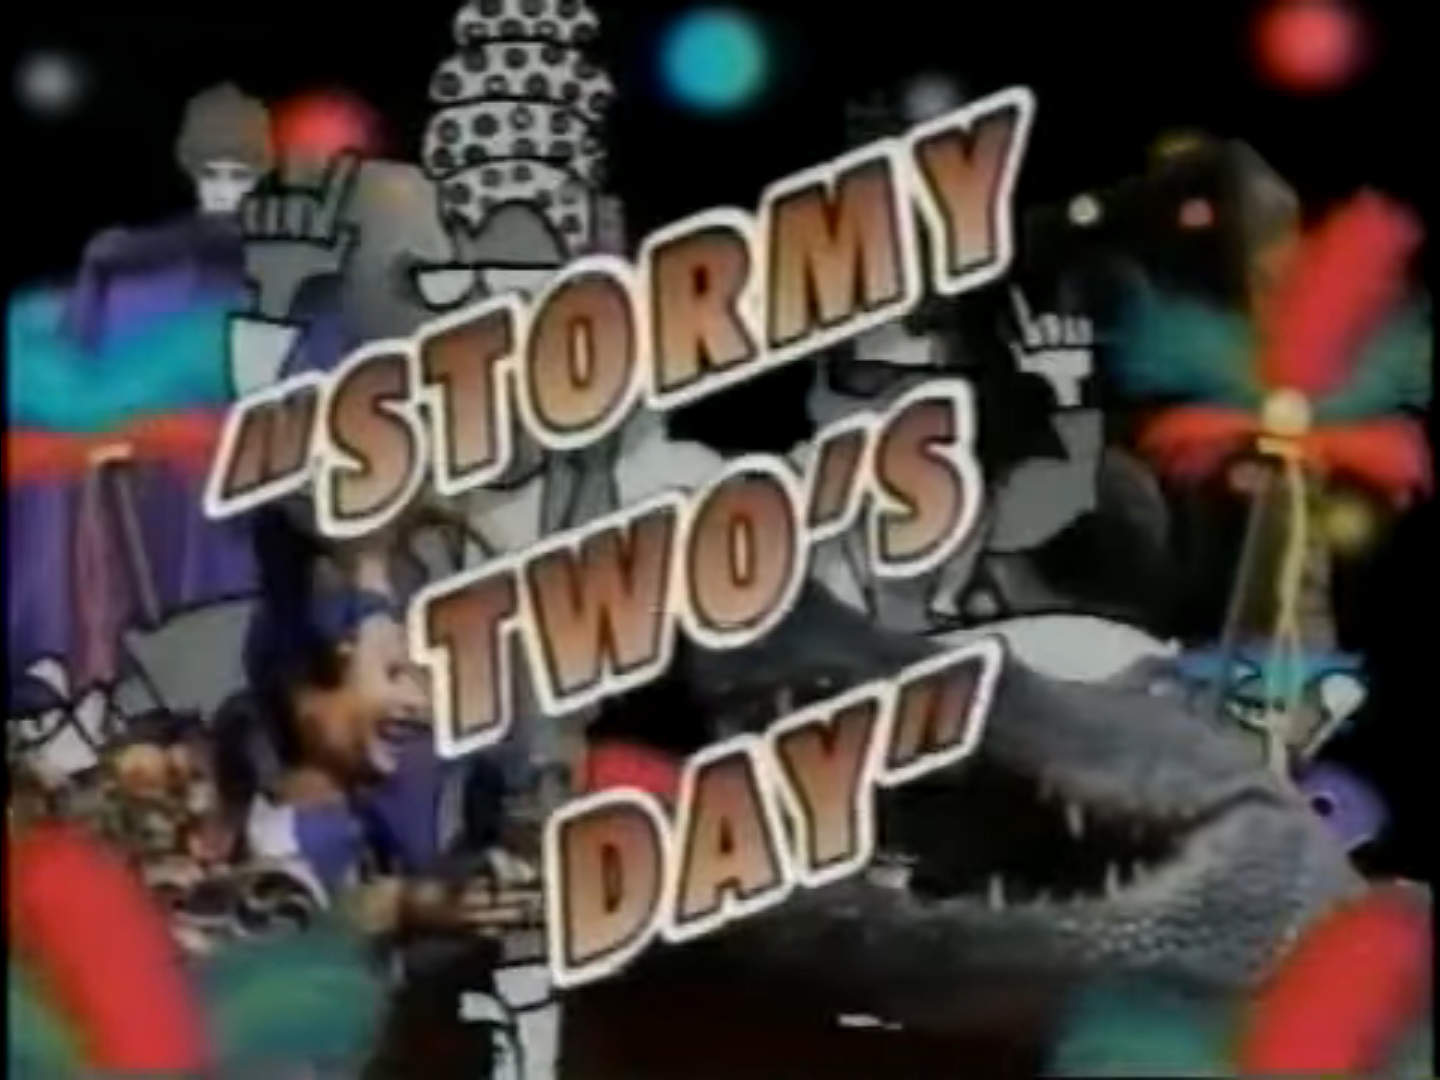 Stormy Two's Day